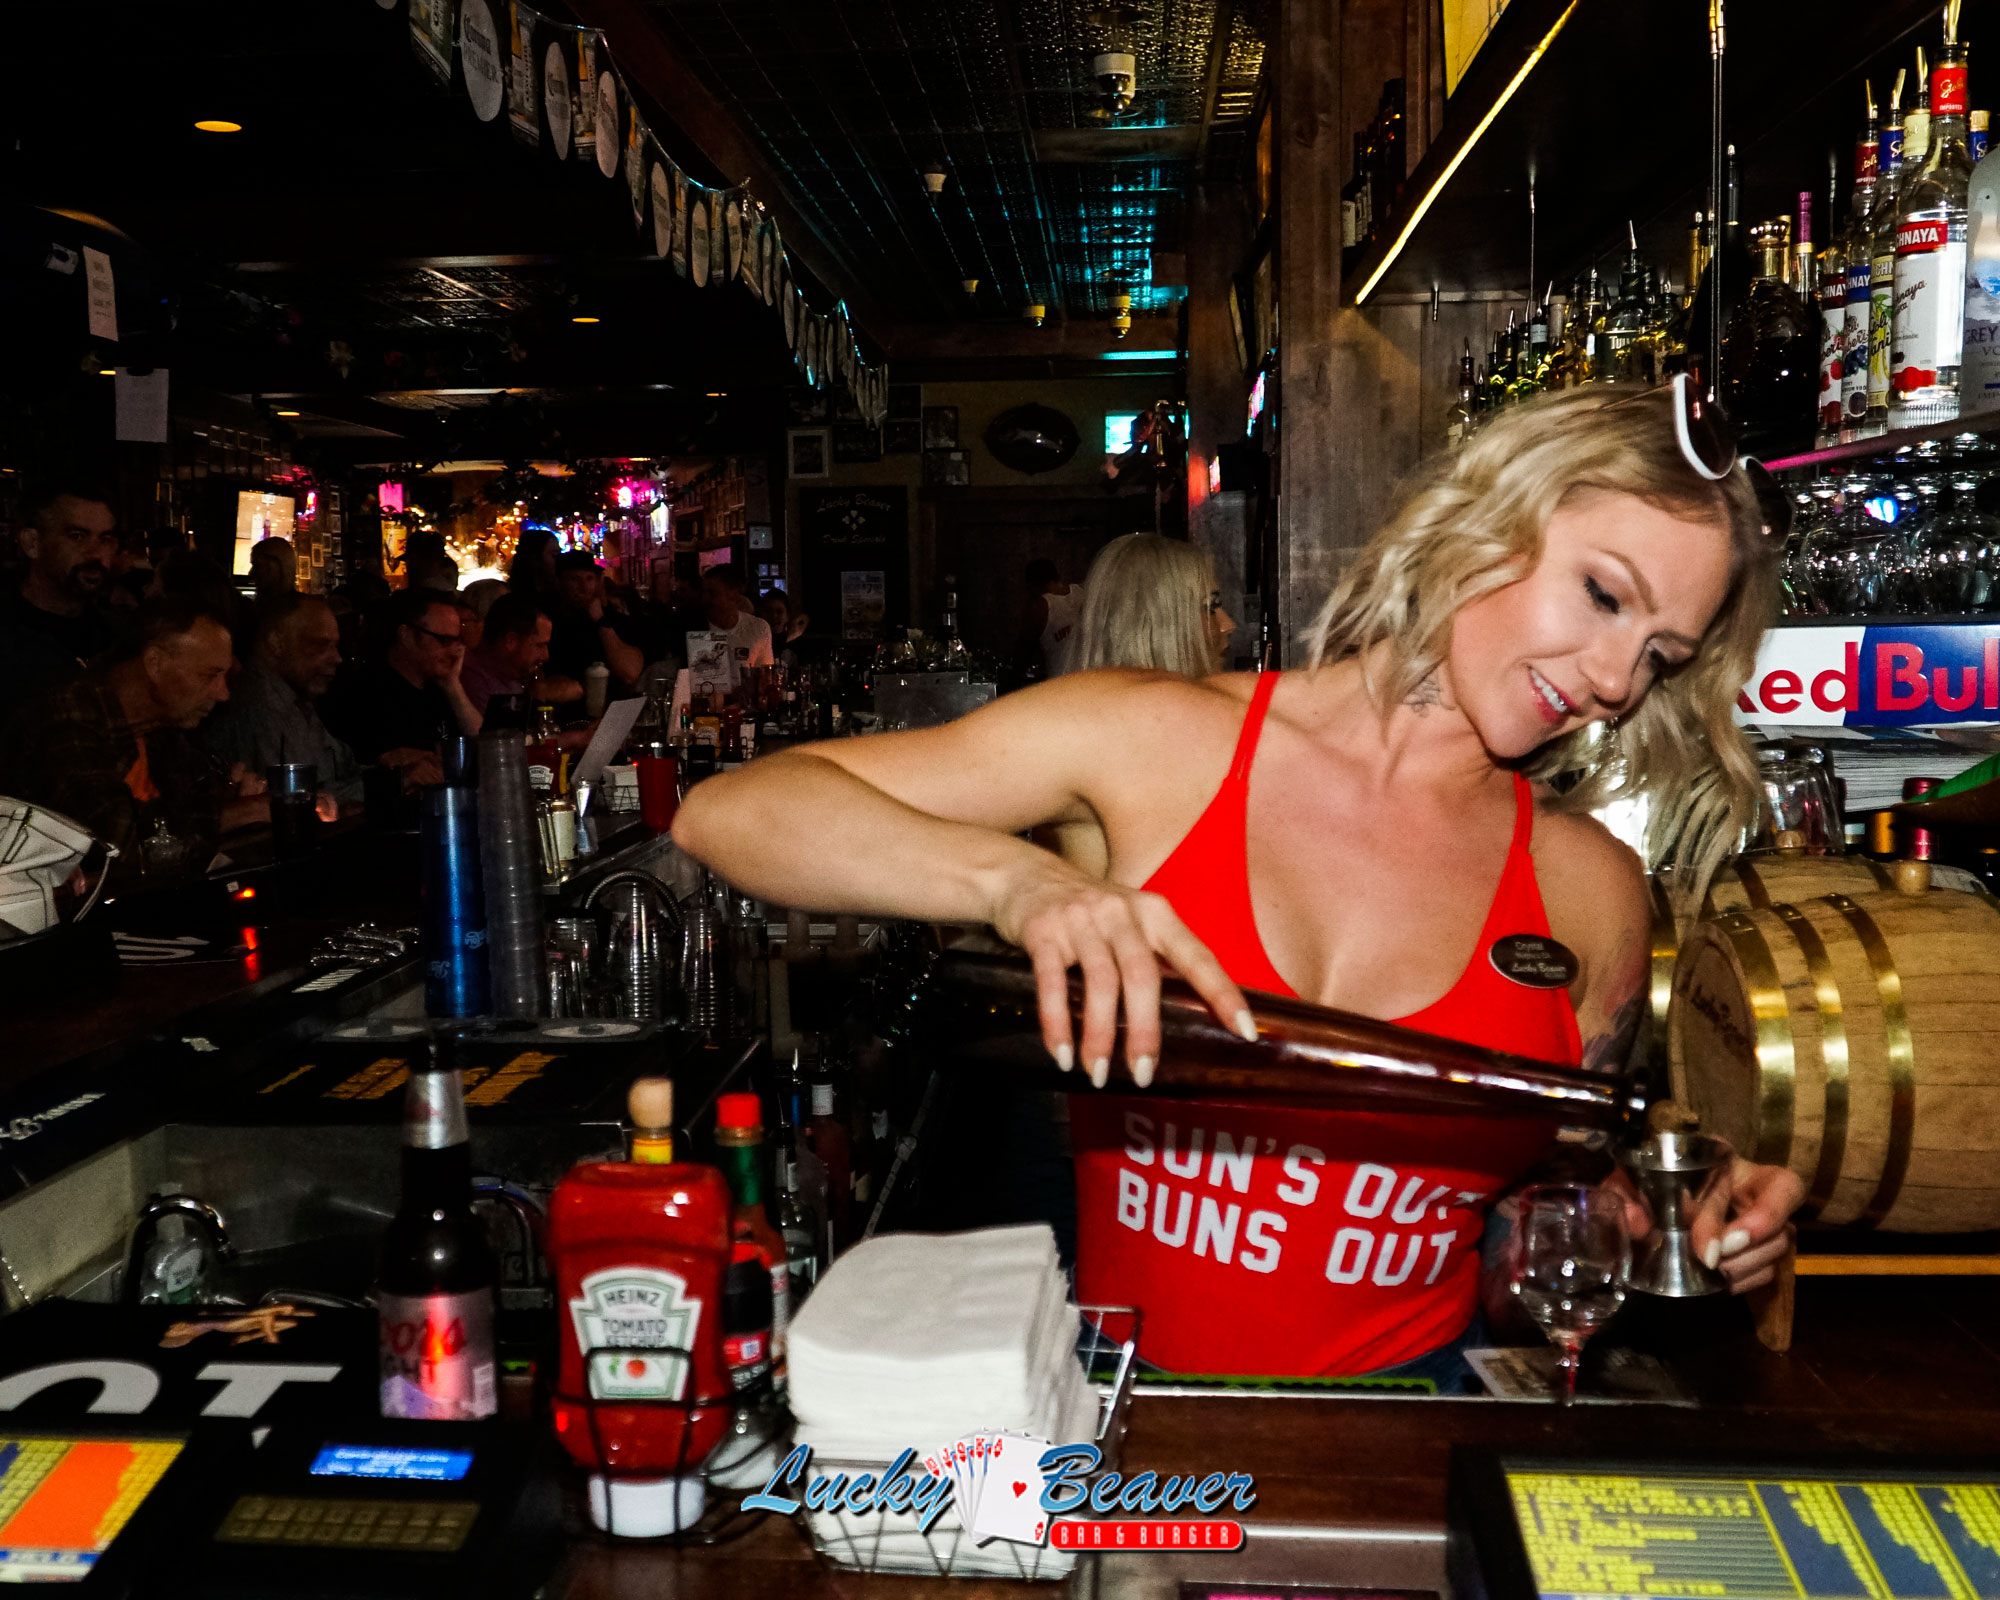 lucky-beaver-bartender-pouring-a-cocktail